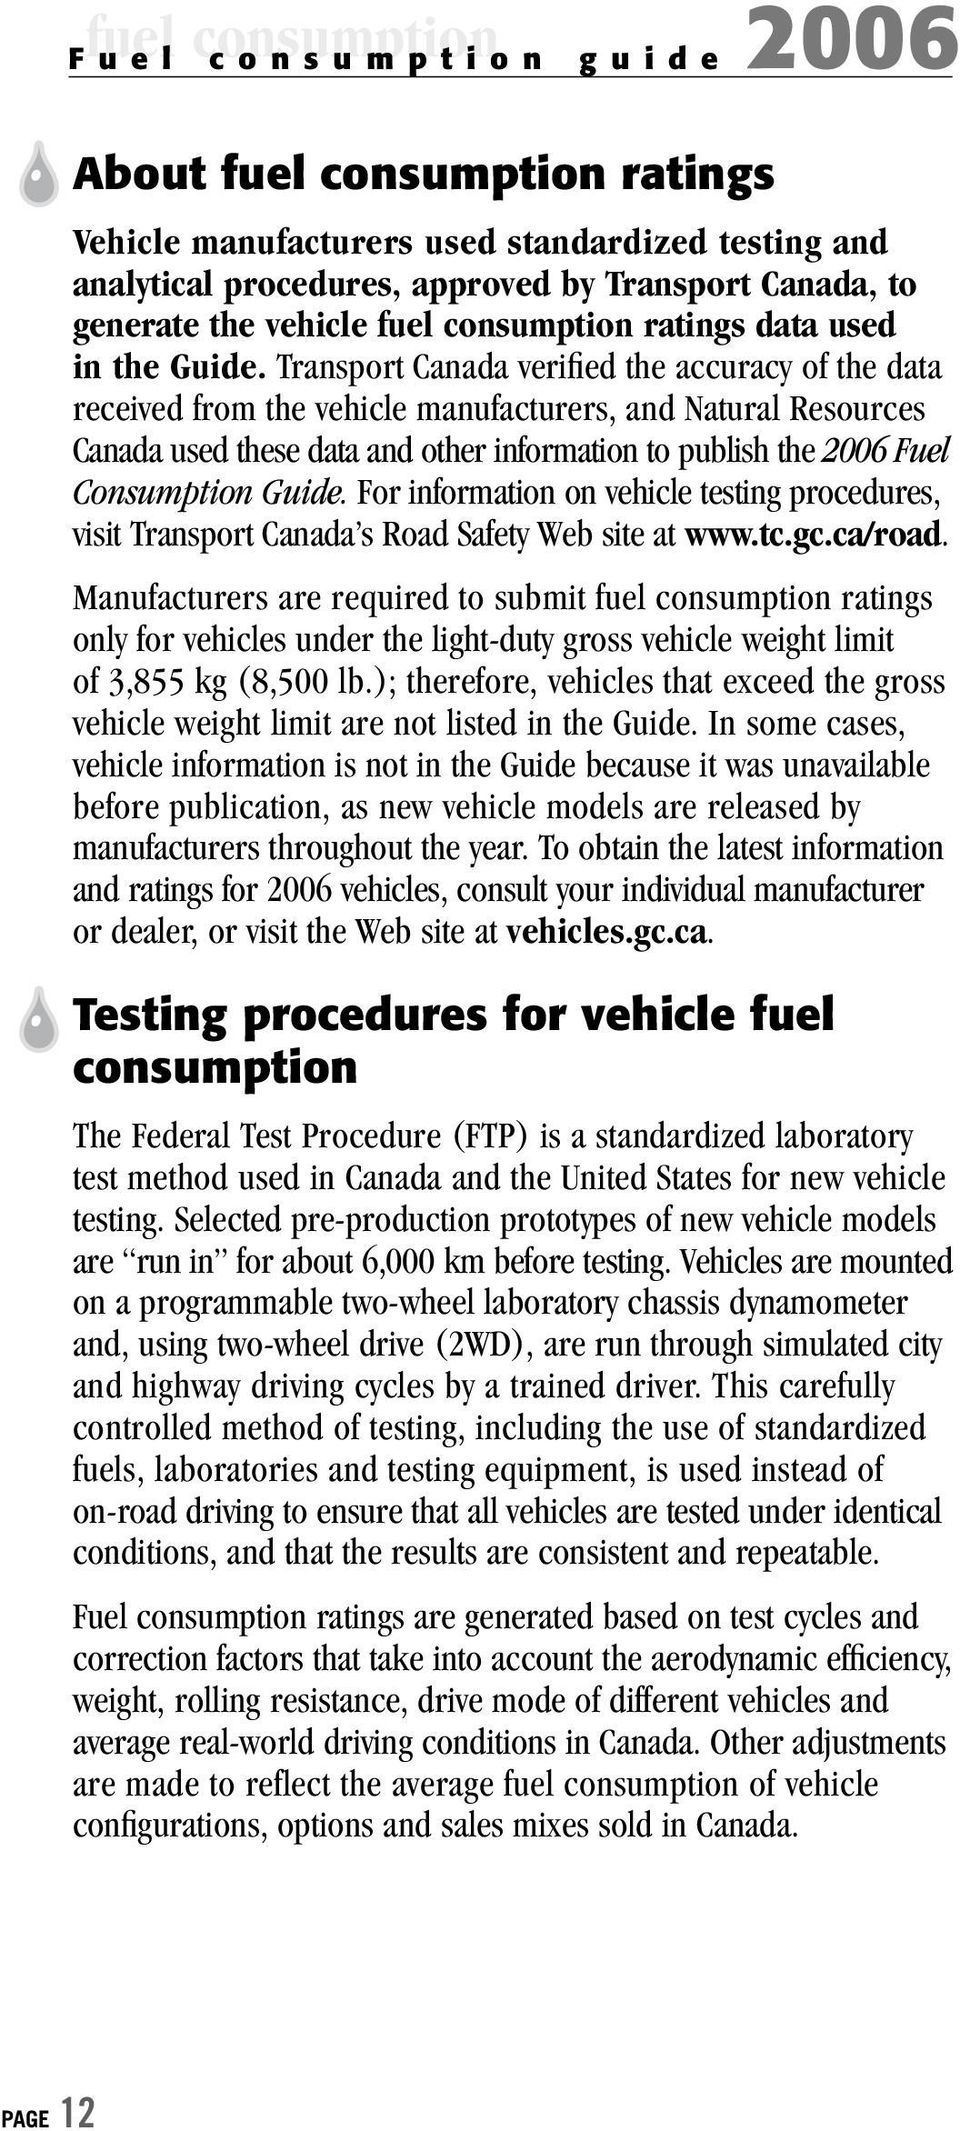 Transport Canada verified the accuracy of the data received from the vehicle manufacturers, and Natural Resources Canada used these data and other information to publish the 2006 Fuel Consumption